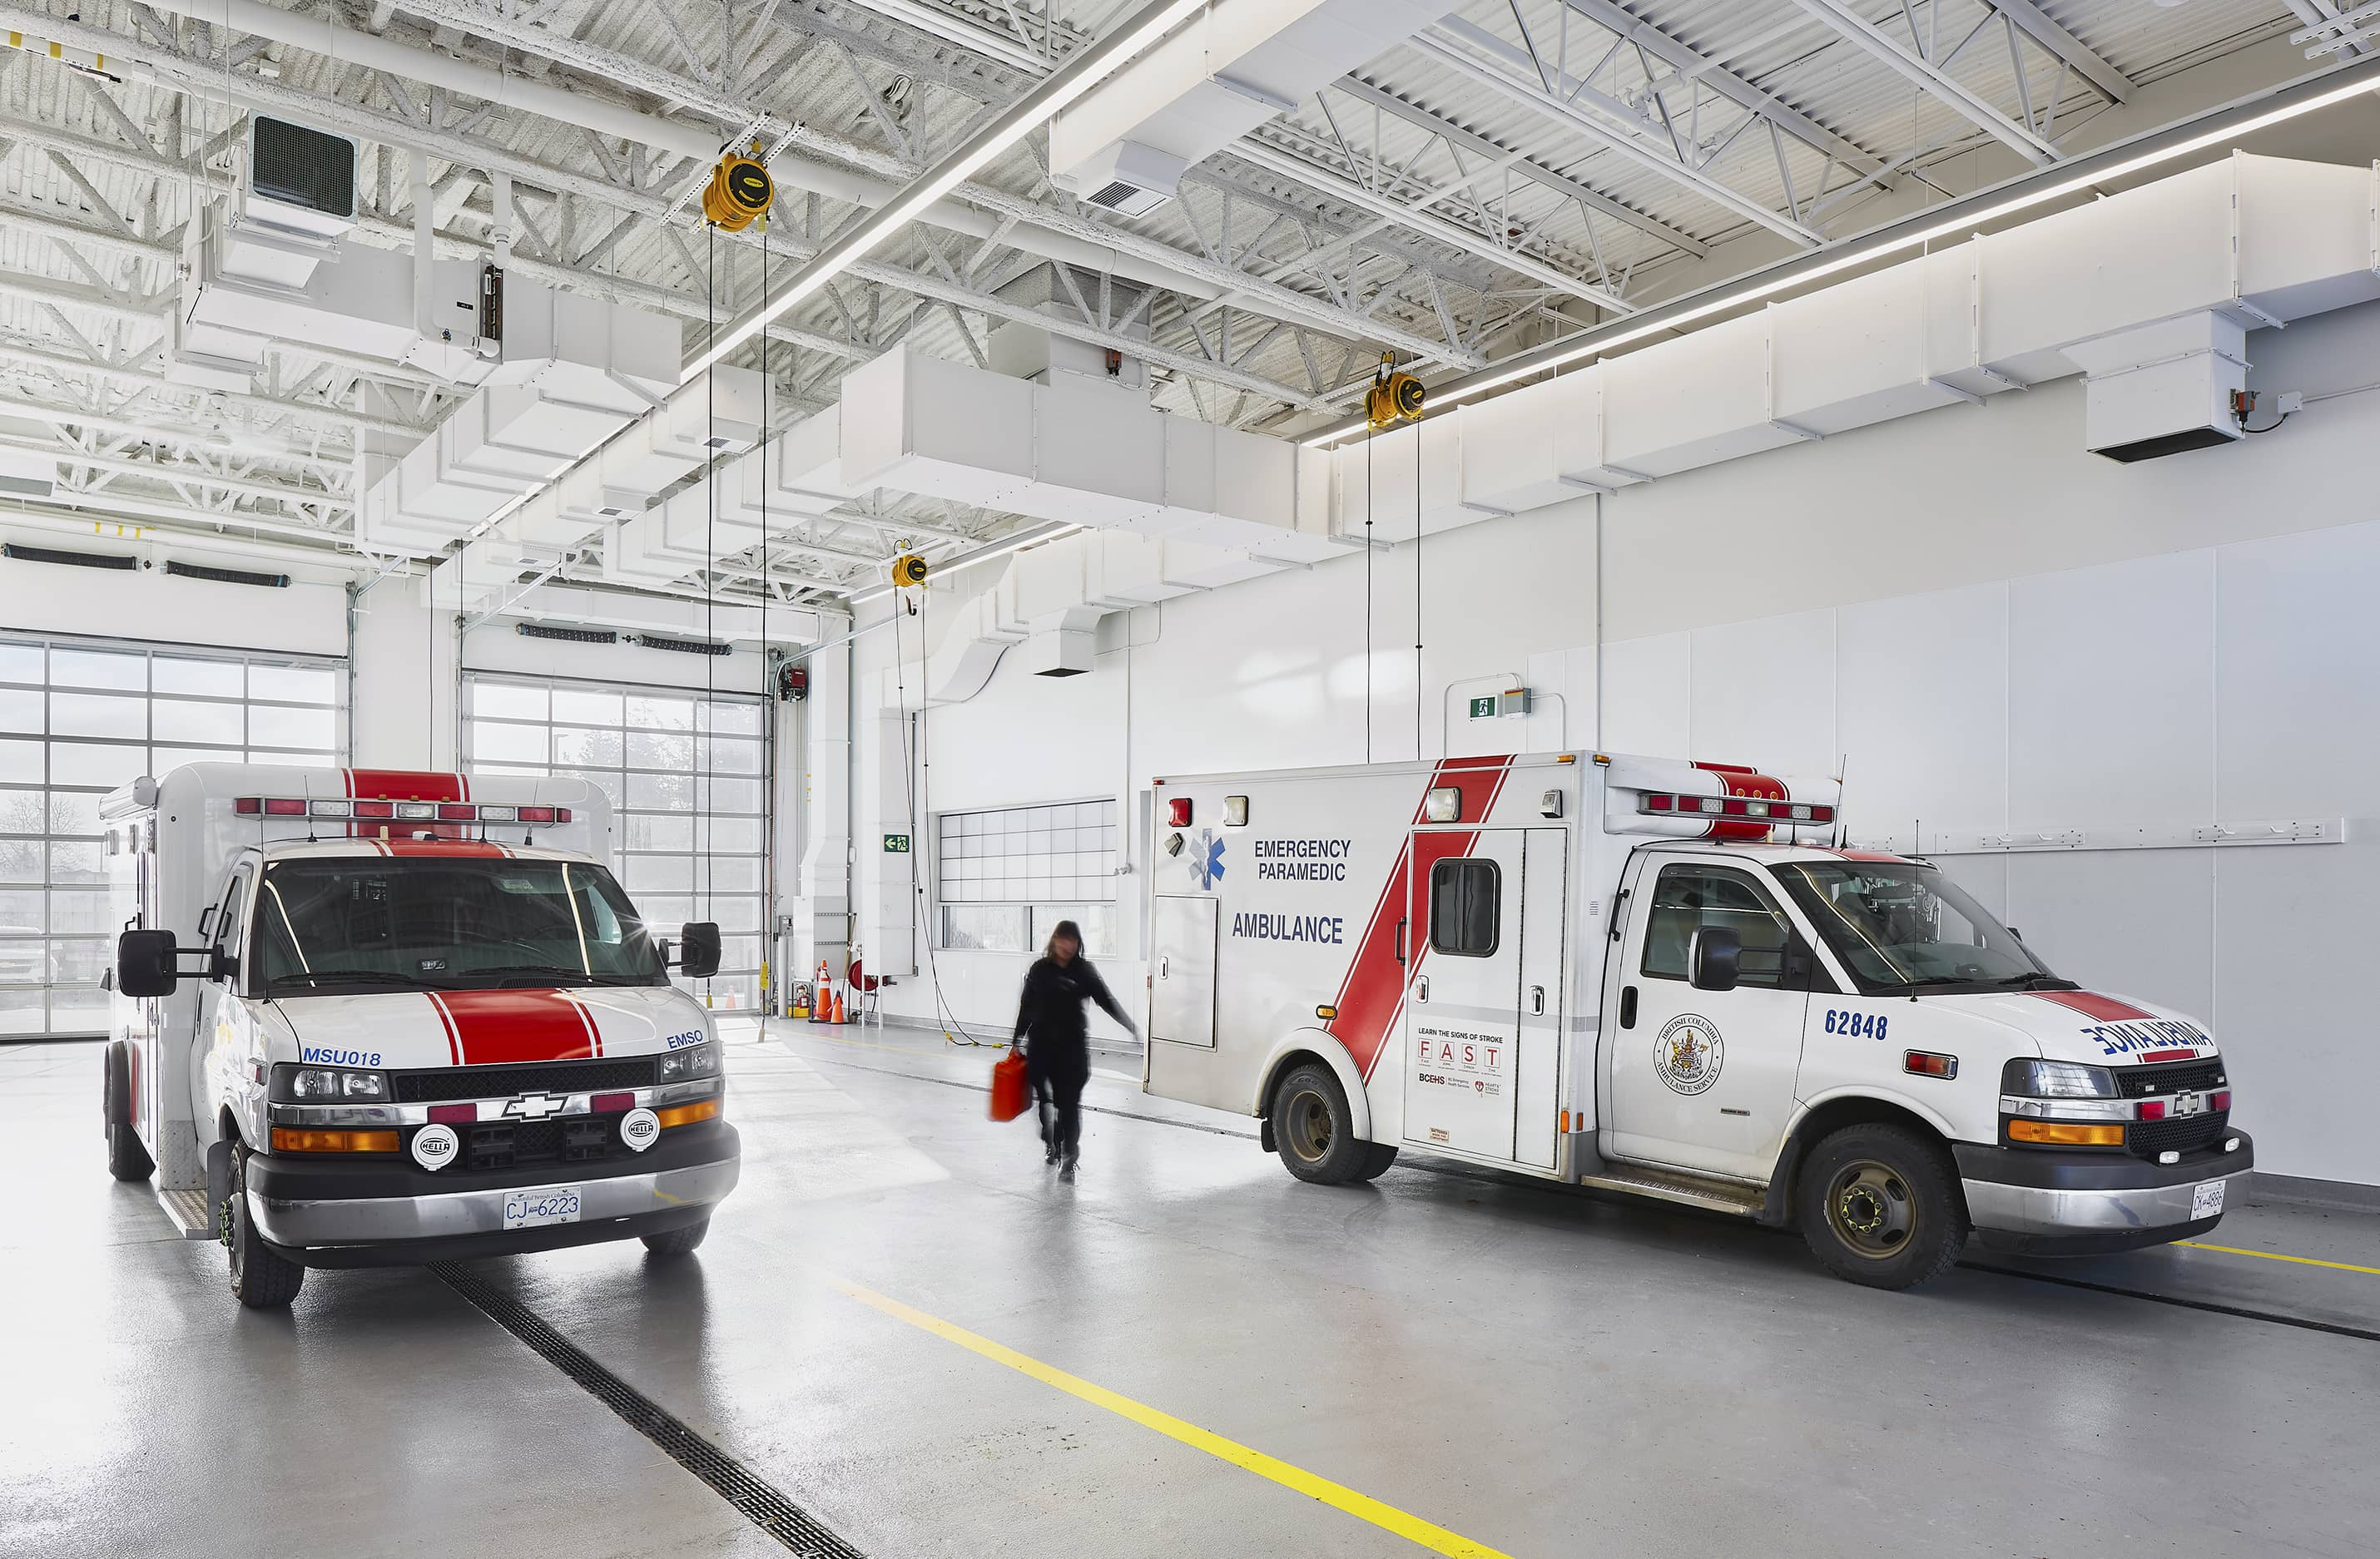 bbp cambie fire hall no. 3 & ambulance station garage 2